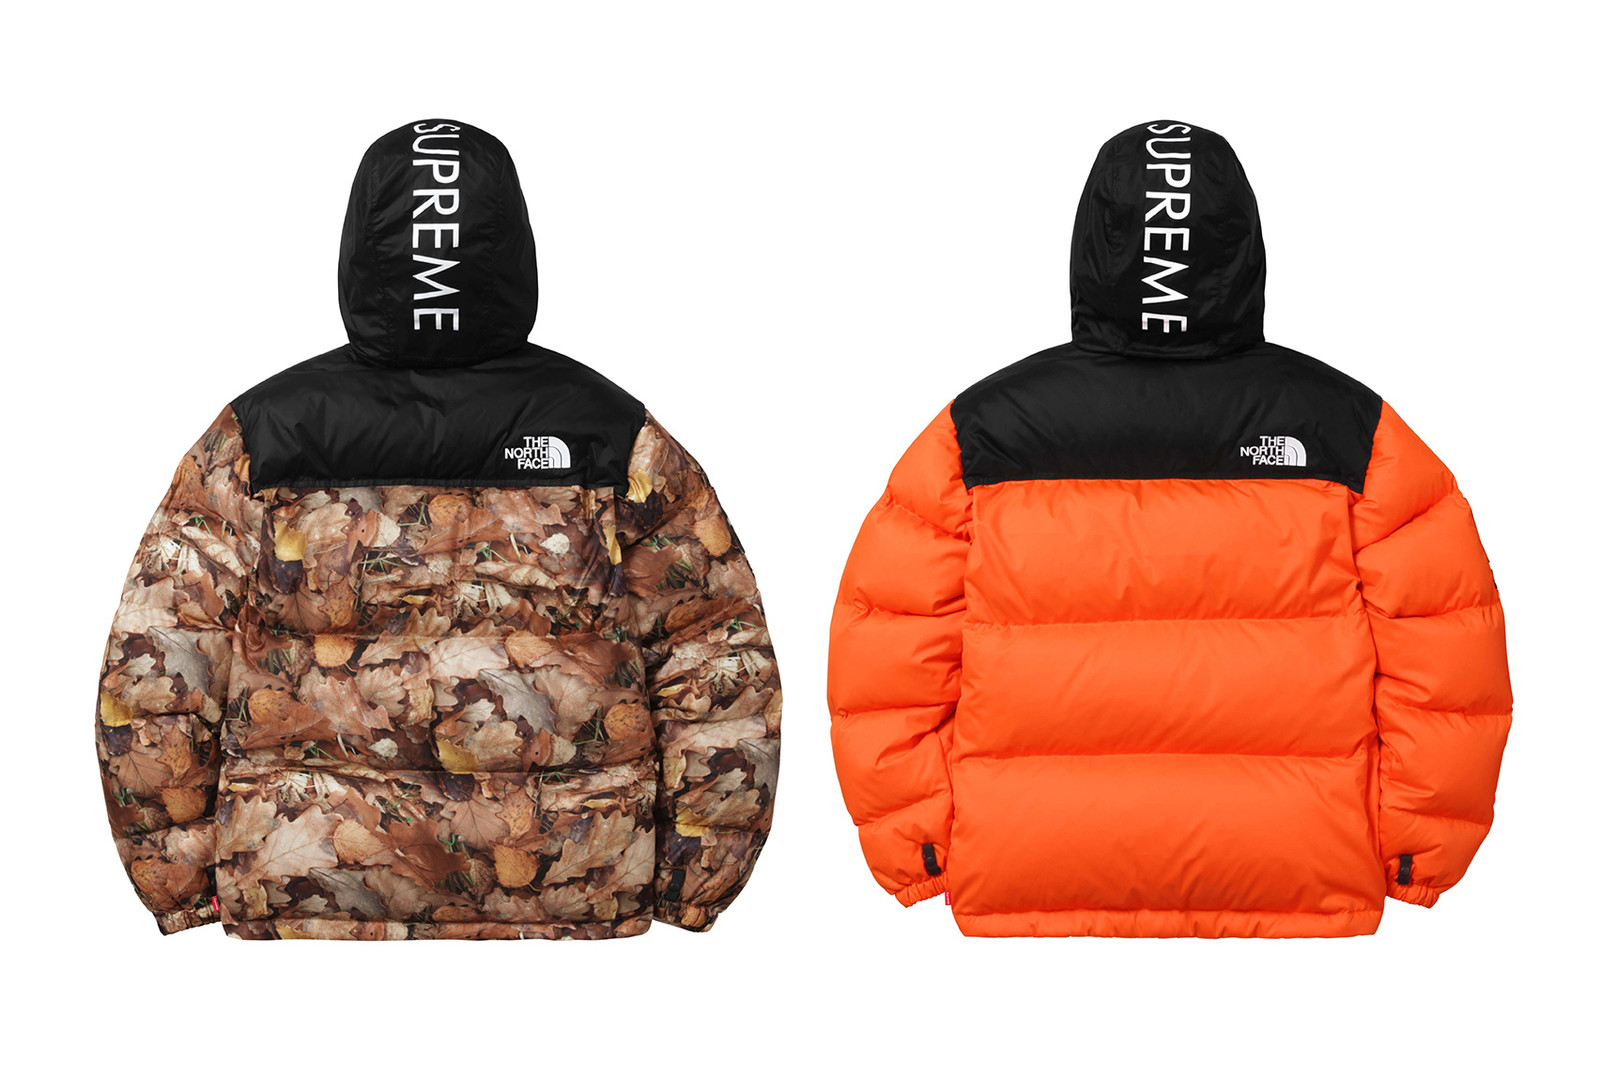 supreme-x-the-north-face-2016-fall-winter-collection-00000